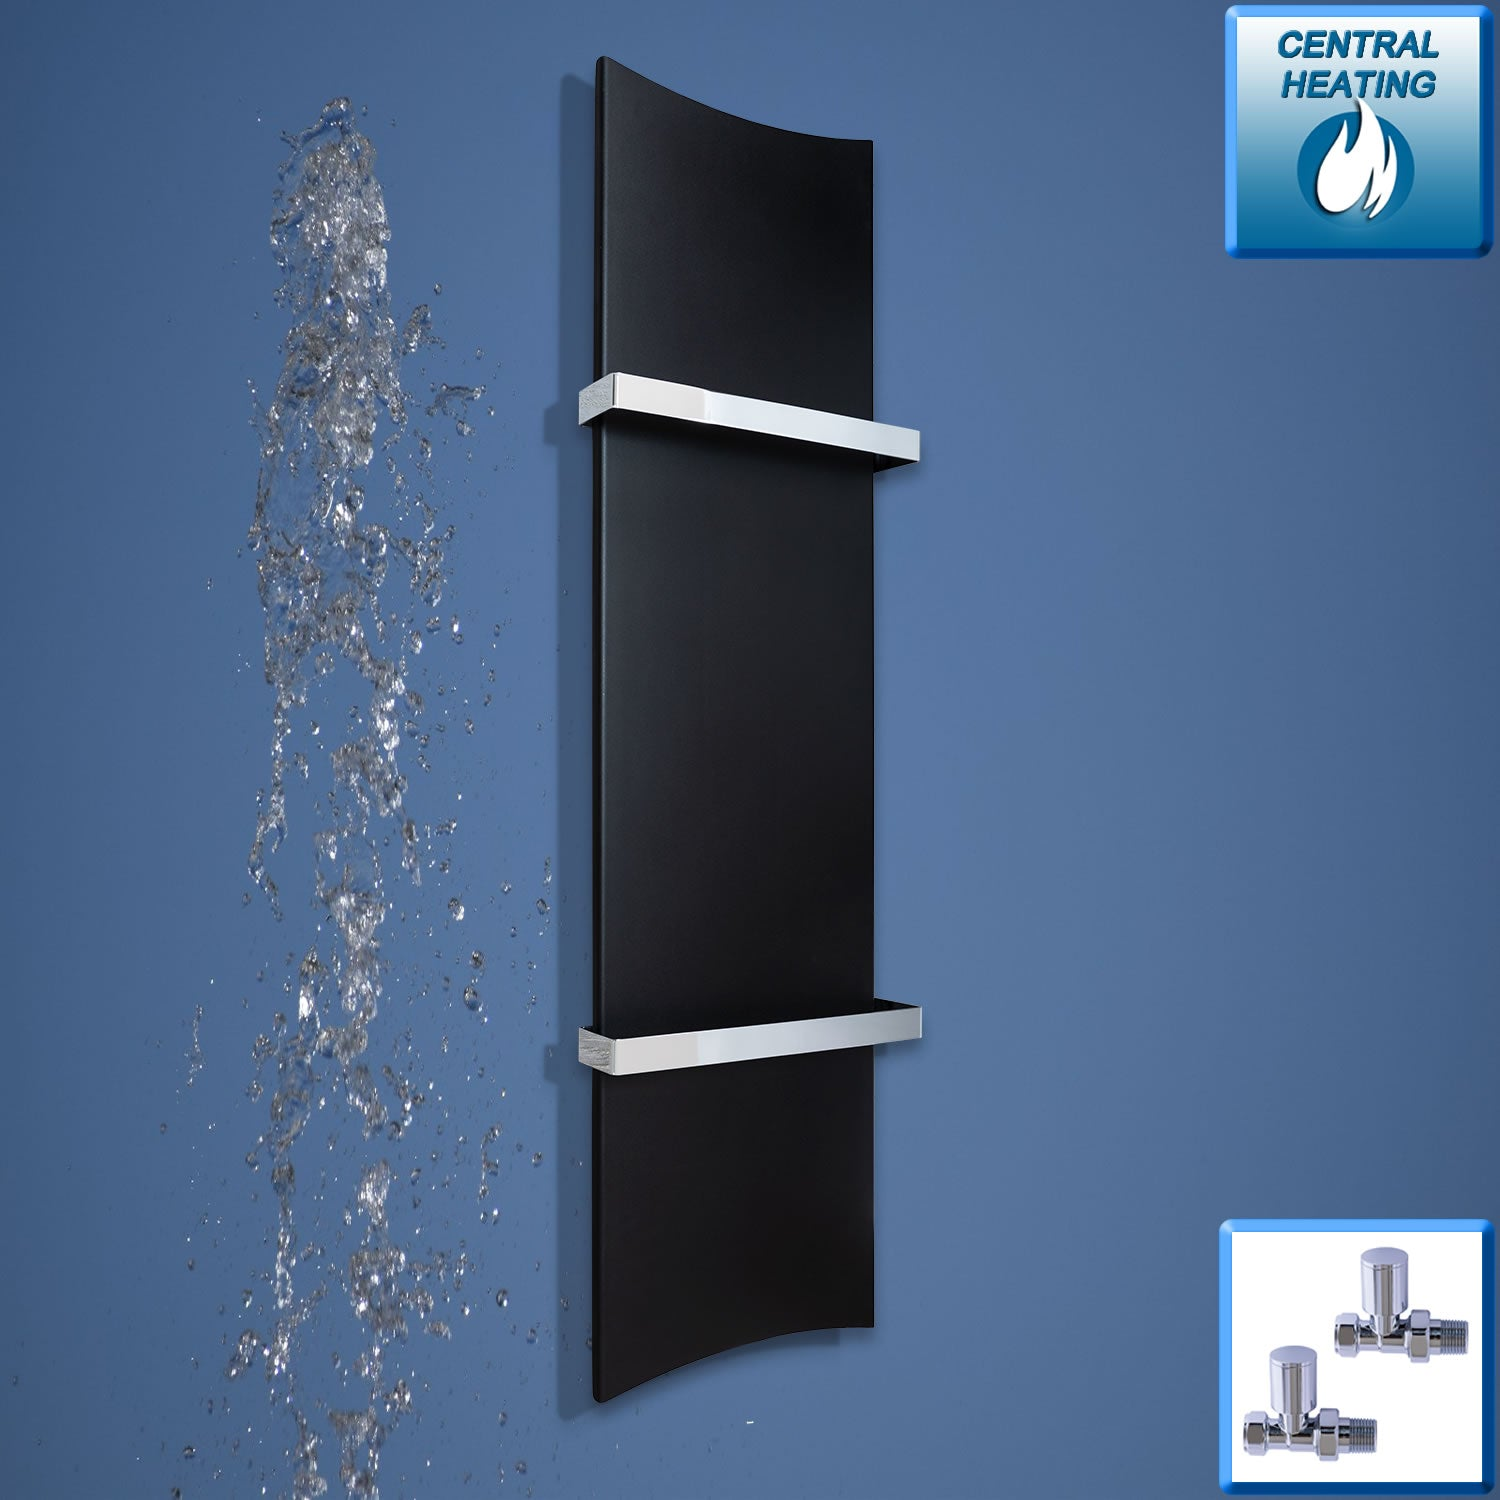 300mm Wide 1200mm High Black Designer Heated Towel Rail Radiator Bone Style,Central Heating With Straight Valves